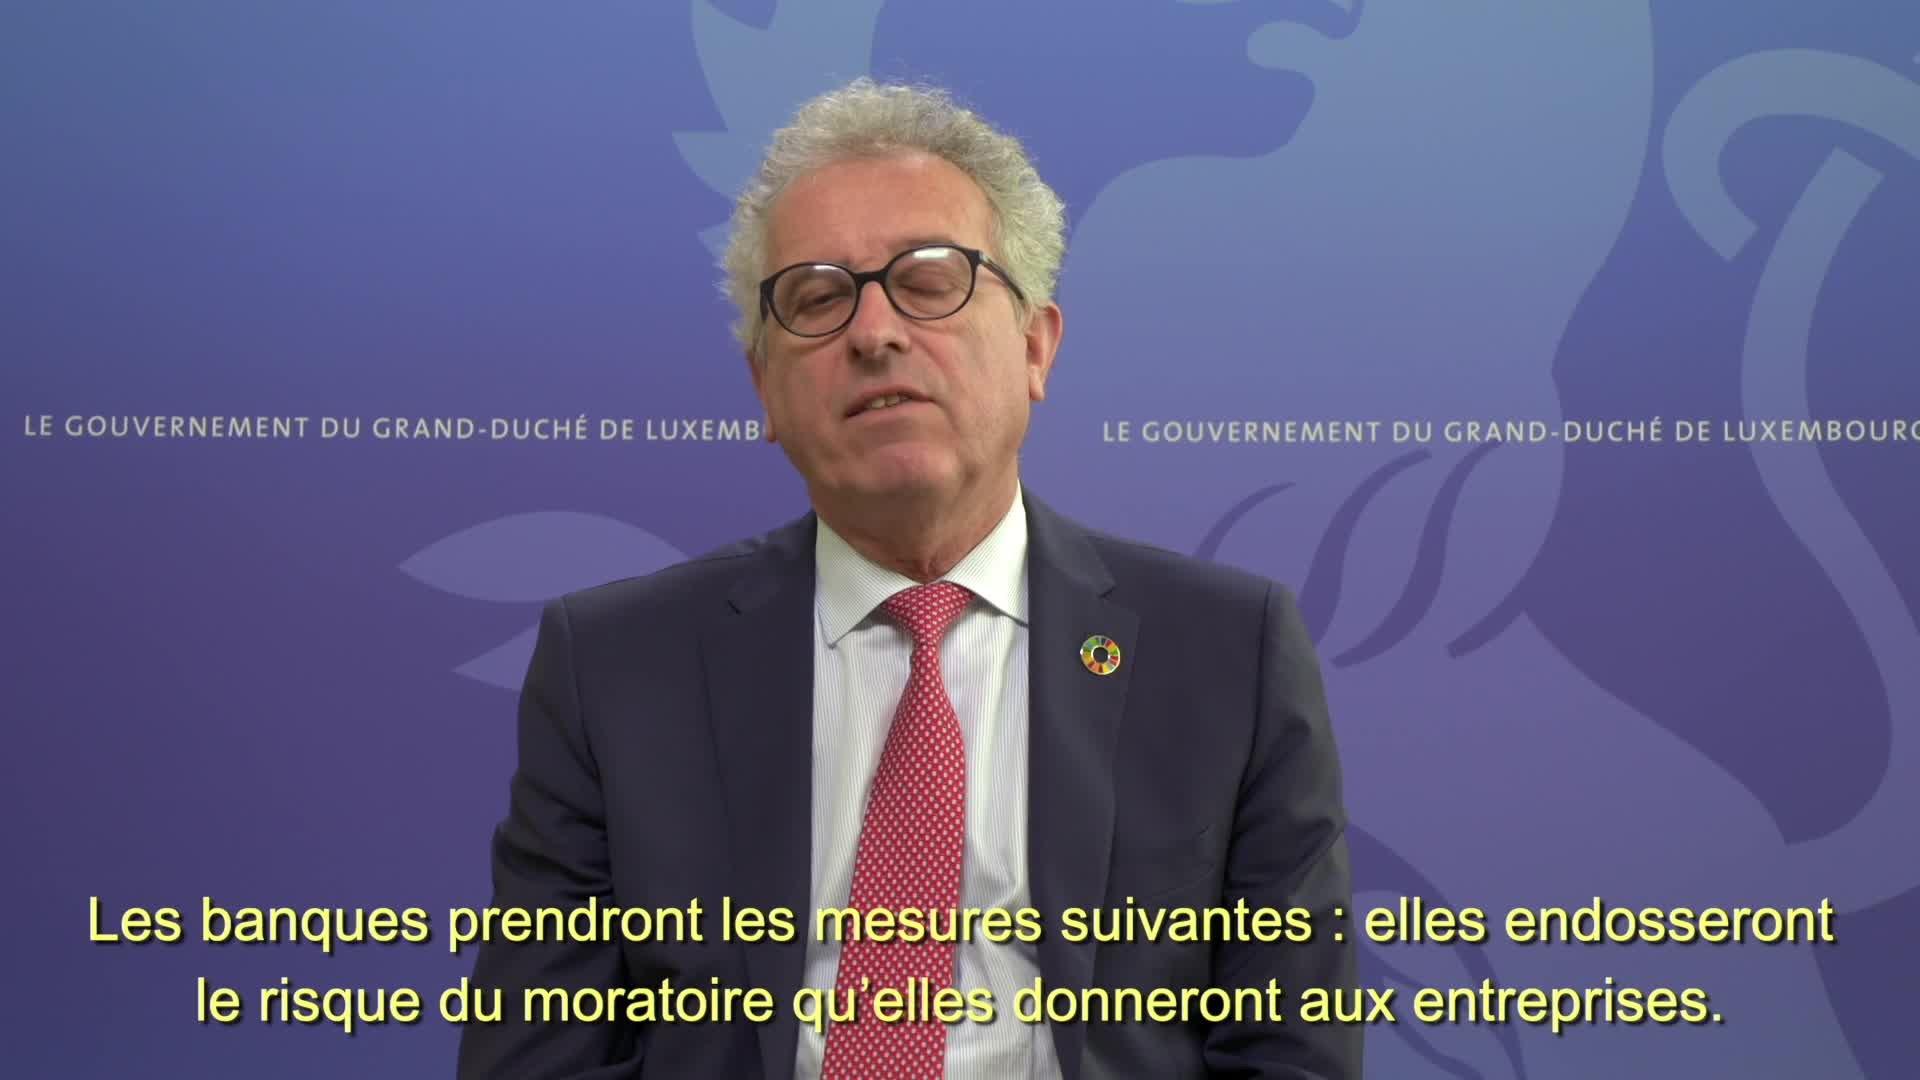 Covid19 - The Minister of Finance, Pierre Gramegna, informs